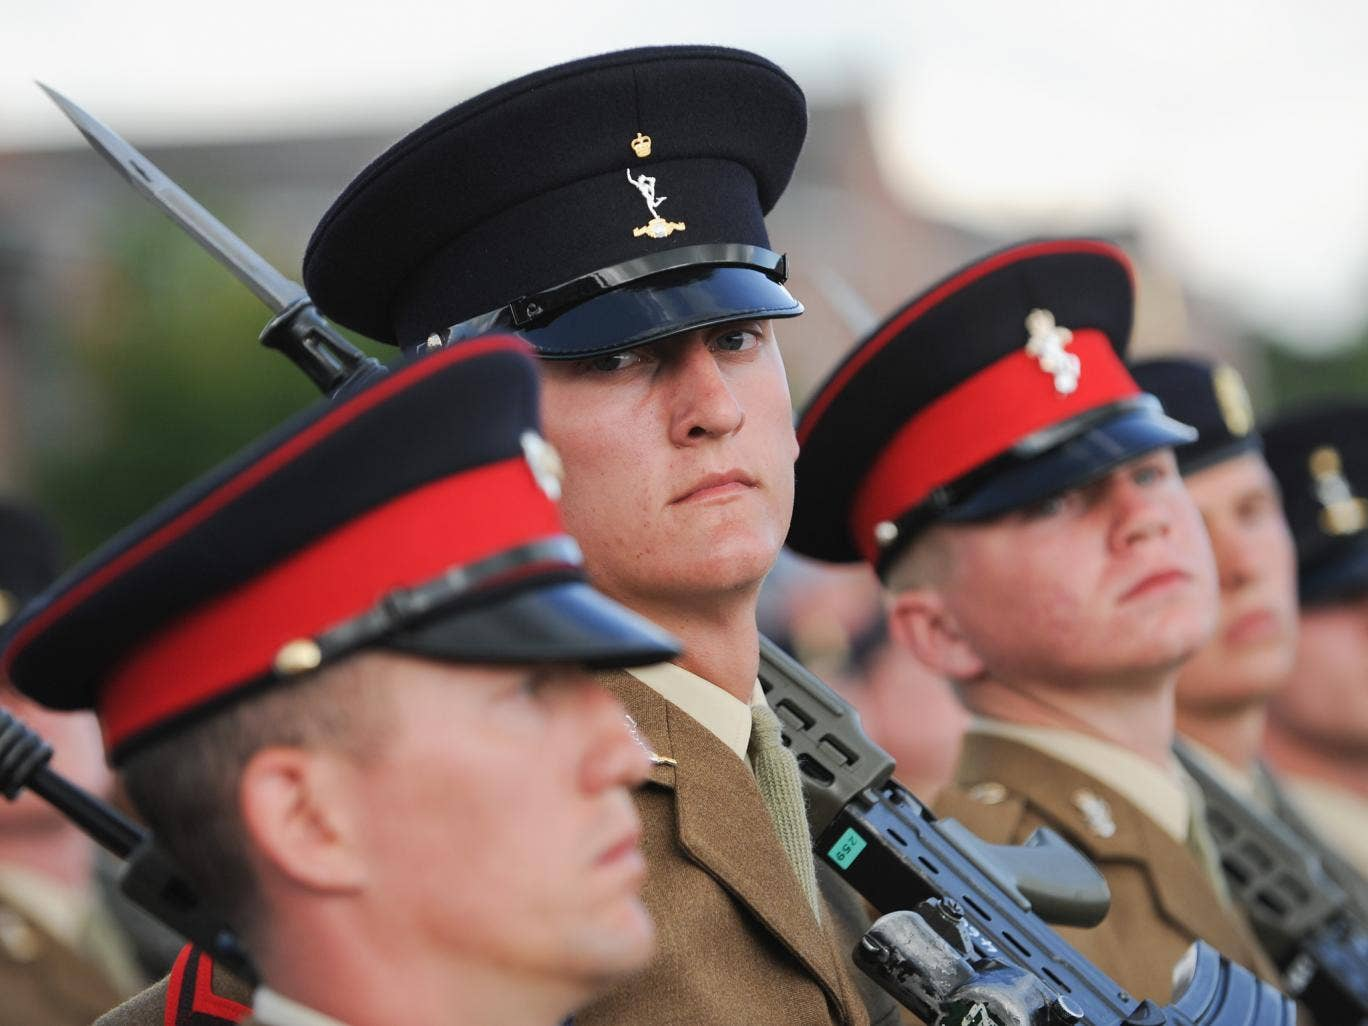 Labour says the forces should boost in-service training so personnel have more skills when they leave